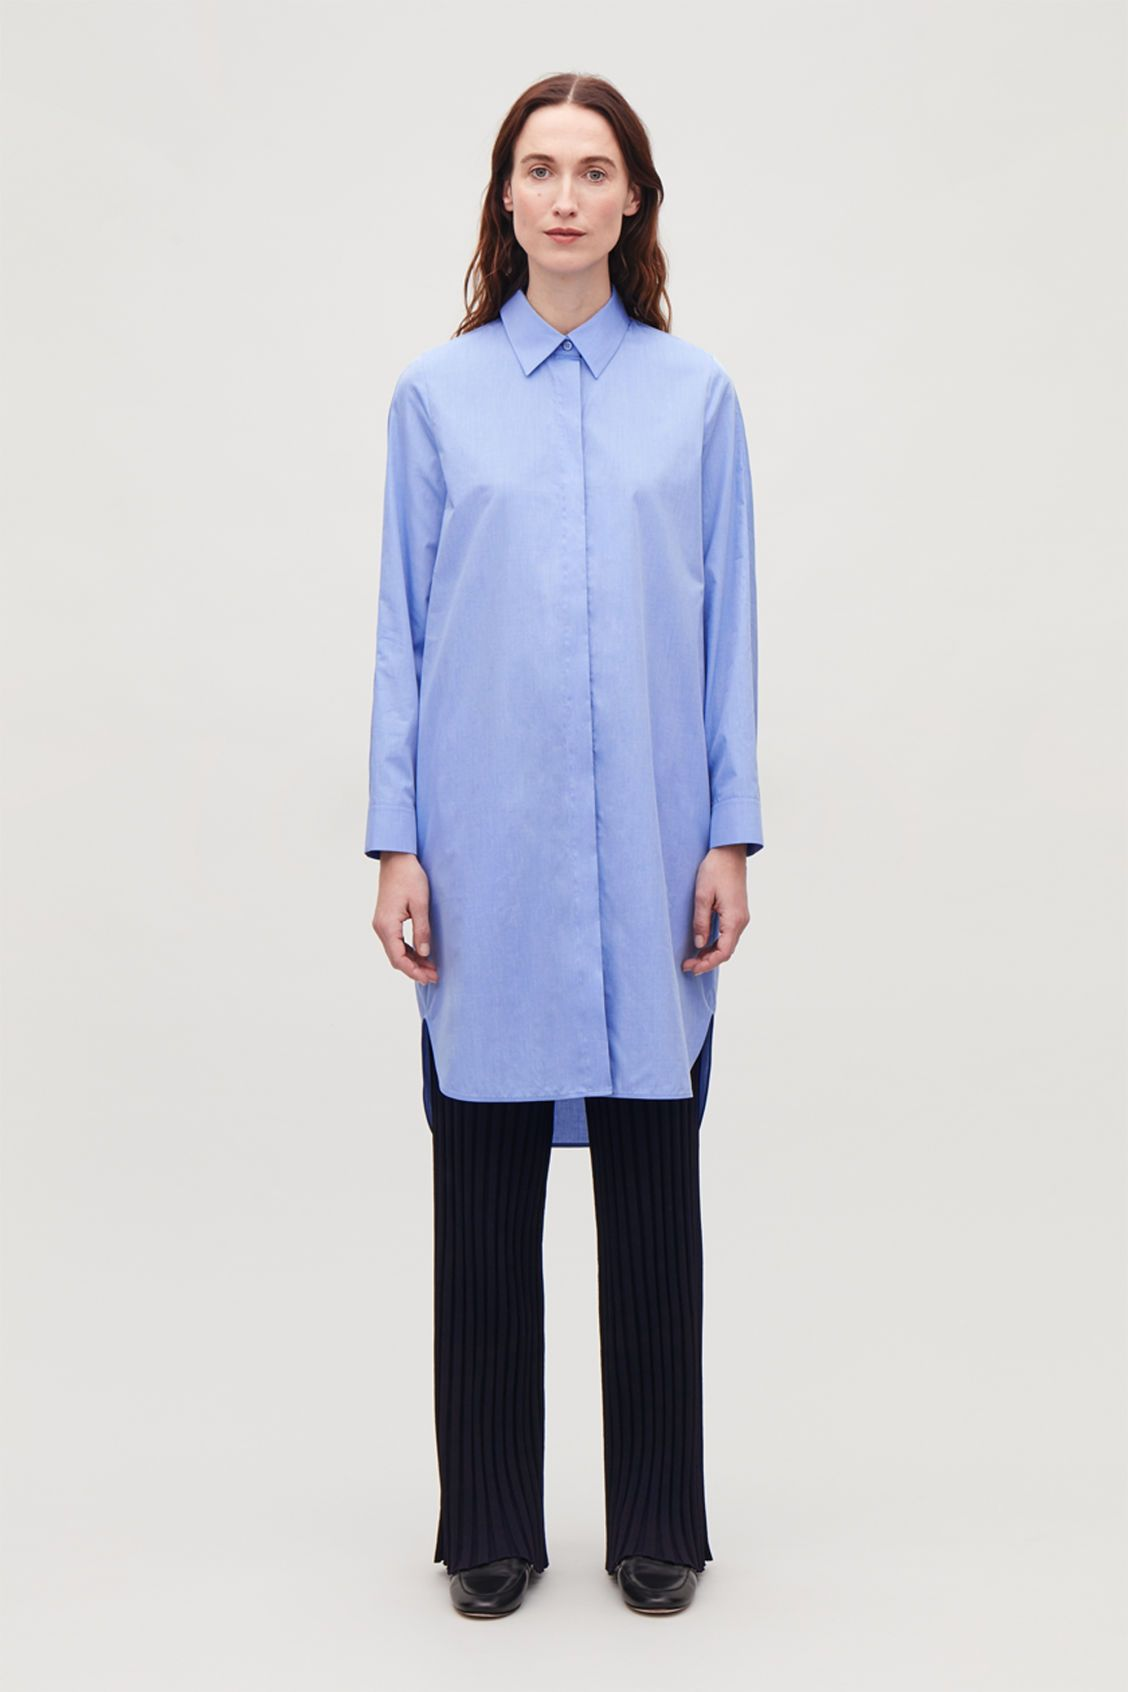 Image Front Model Dress Fil Blue Cos Cotton Shirt A In Of qrqZd5